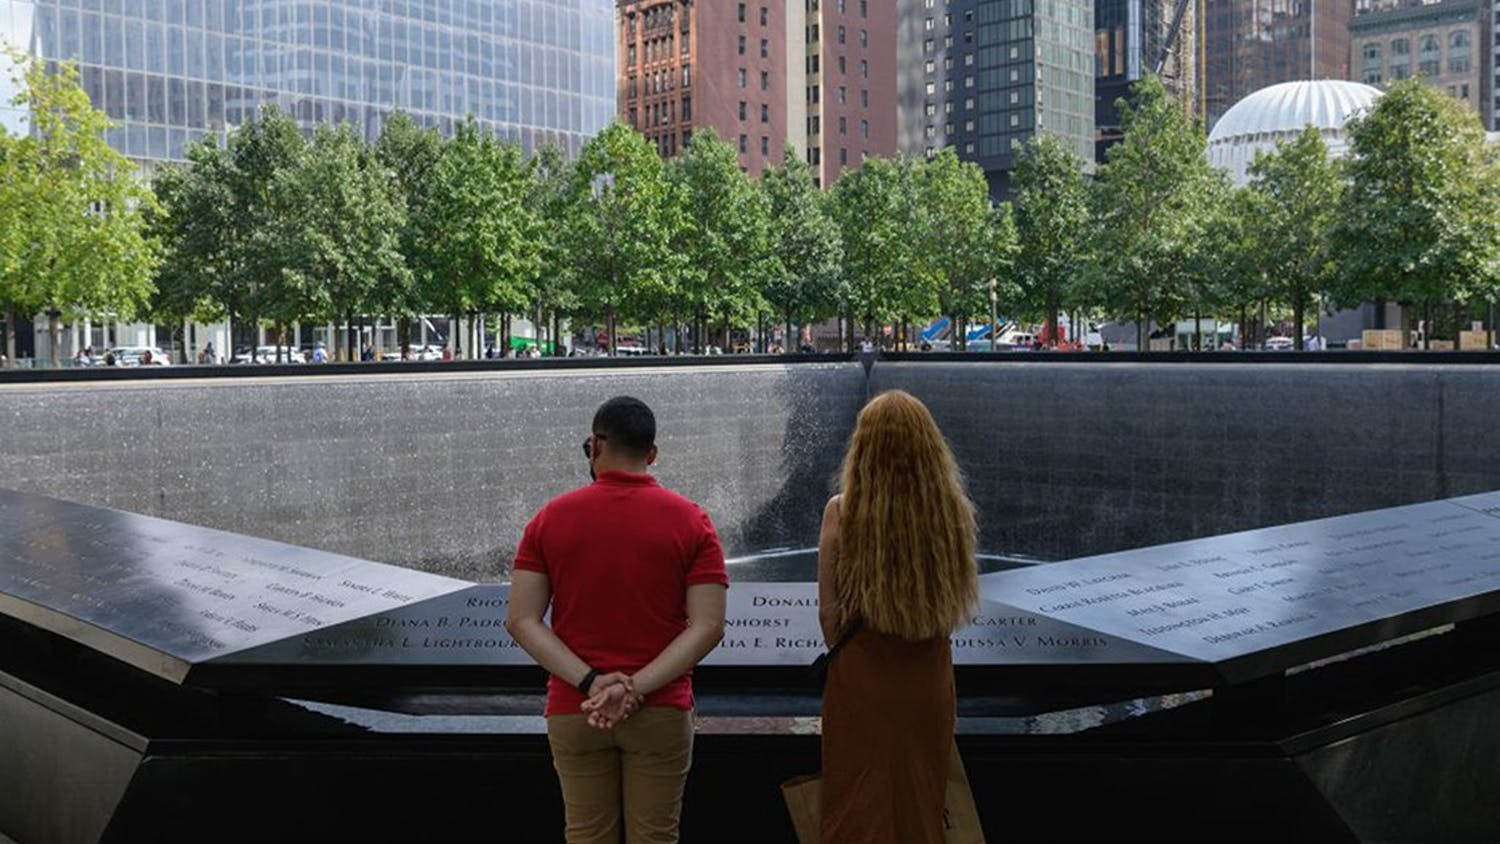 A couple stands before the National September 11 Memorial, marking the site of the south tower at the World Trade Center in New York, on September 8, 2021. (Angela Weiss/AFP via Getty Images/TNS)